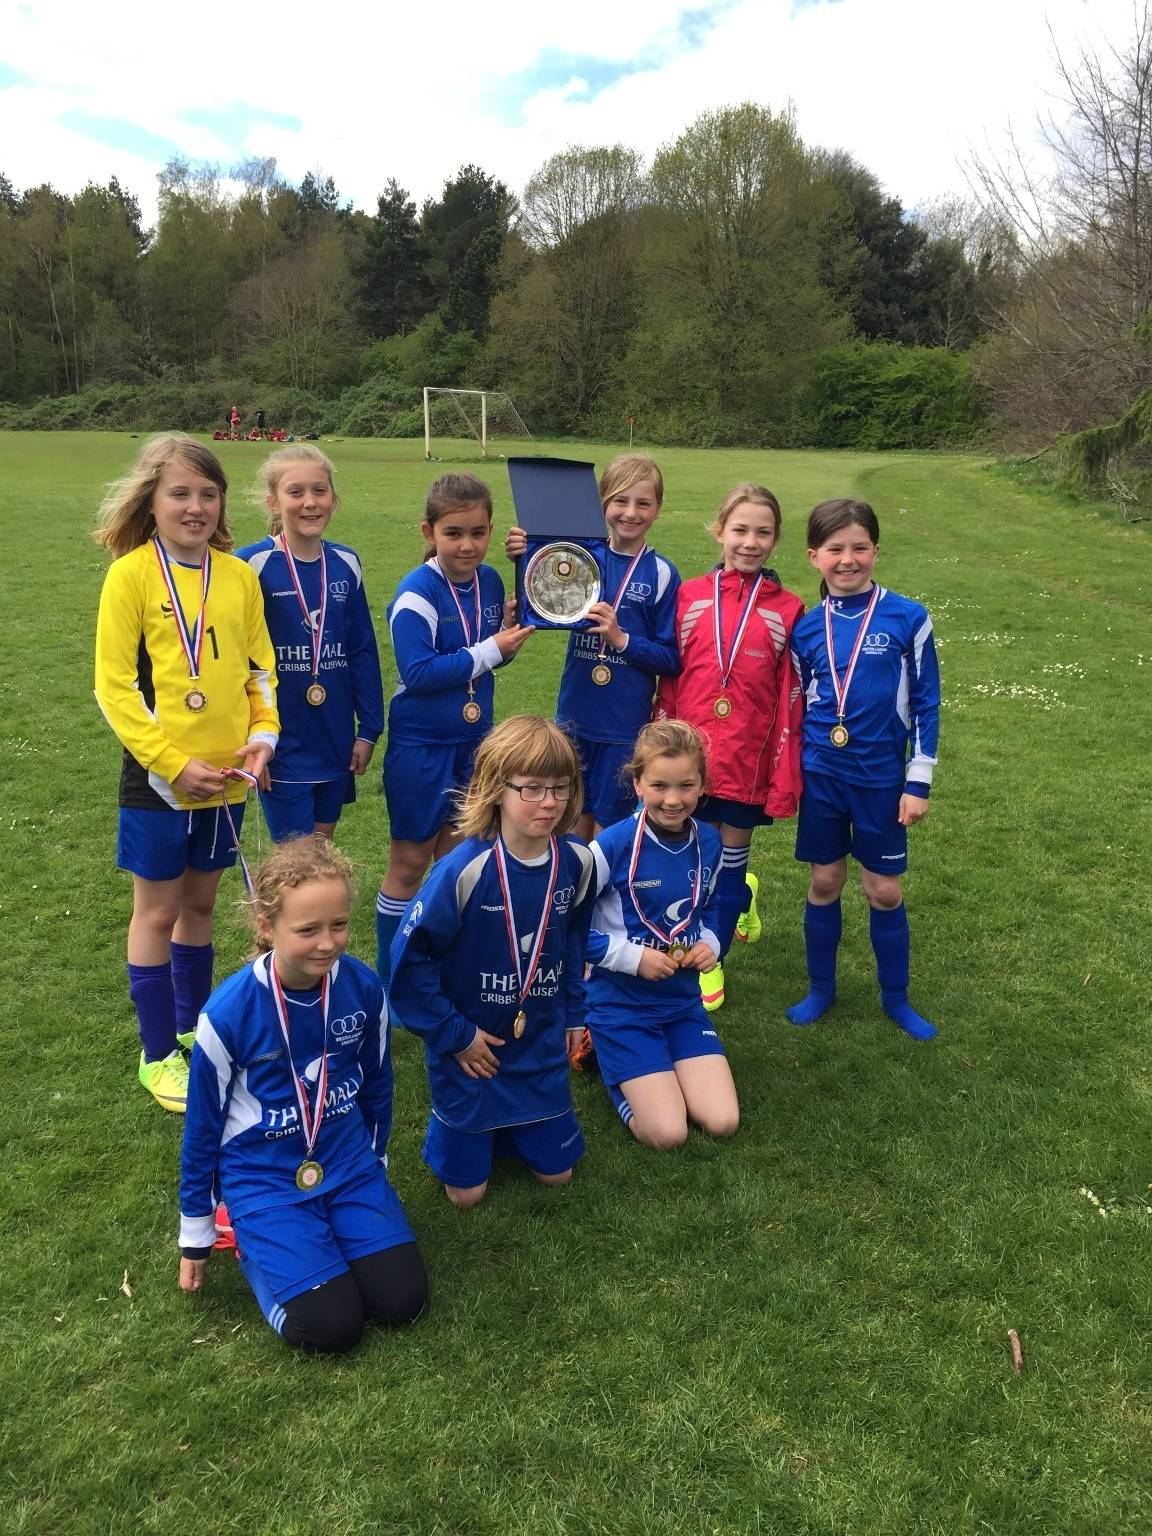 Well Done The U10's